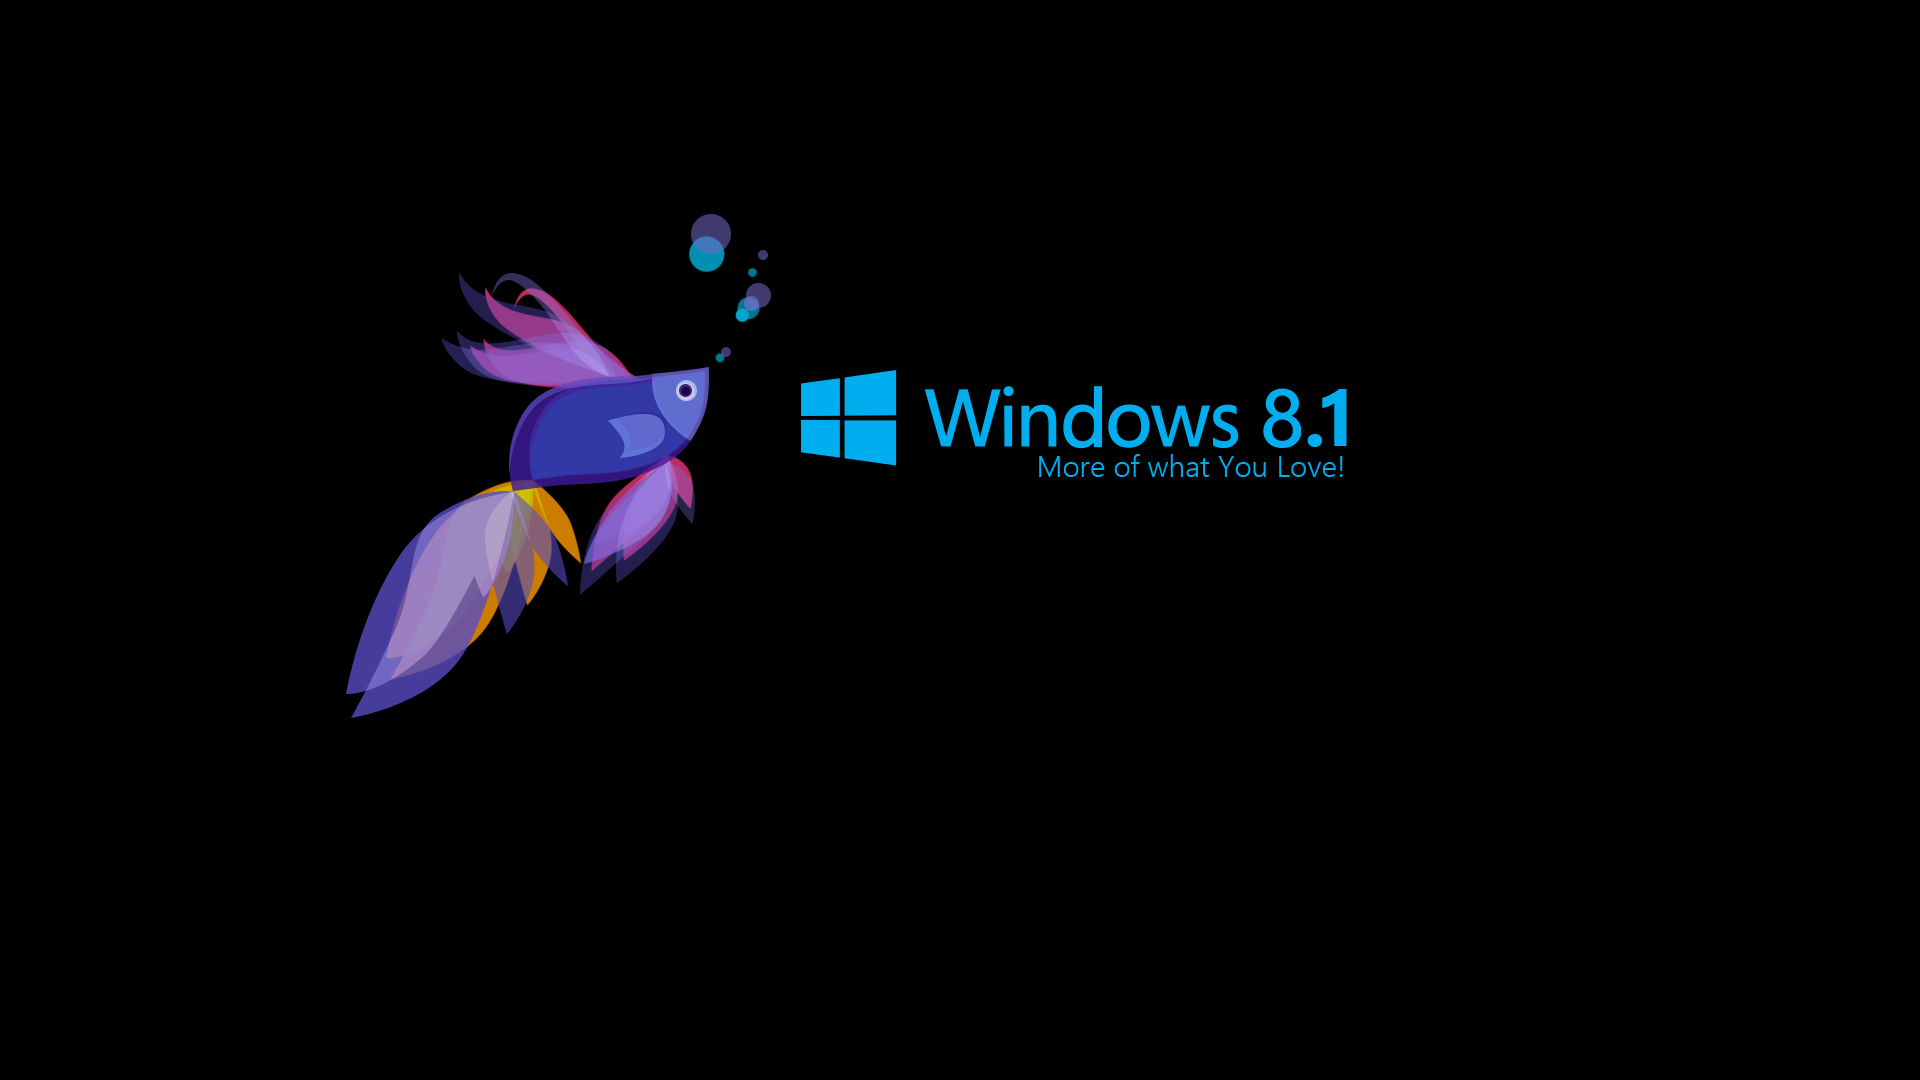 http://ipicturee.com/wp-content/uploads/2013/12/Free-Windows-8.1-HD-Wallpapers.png